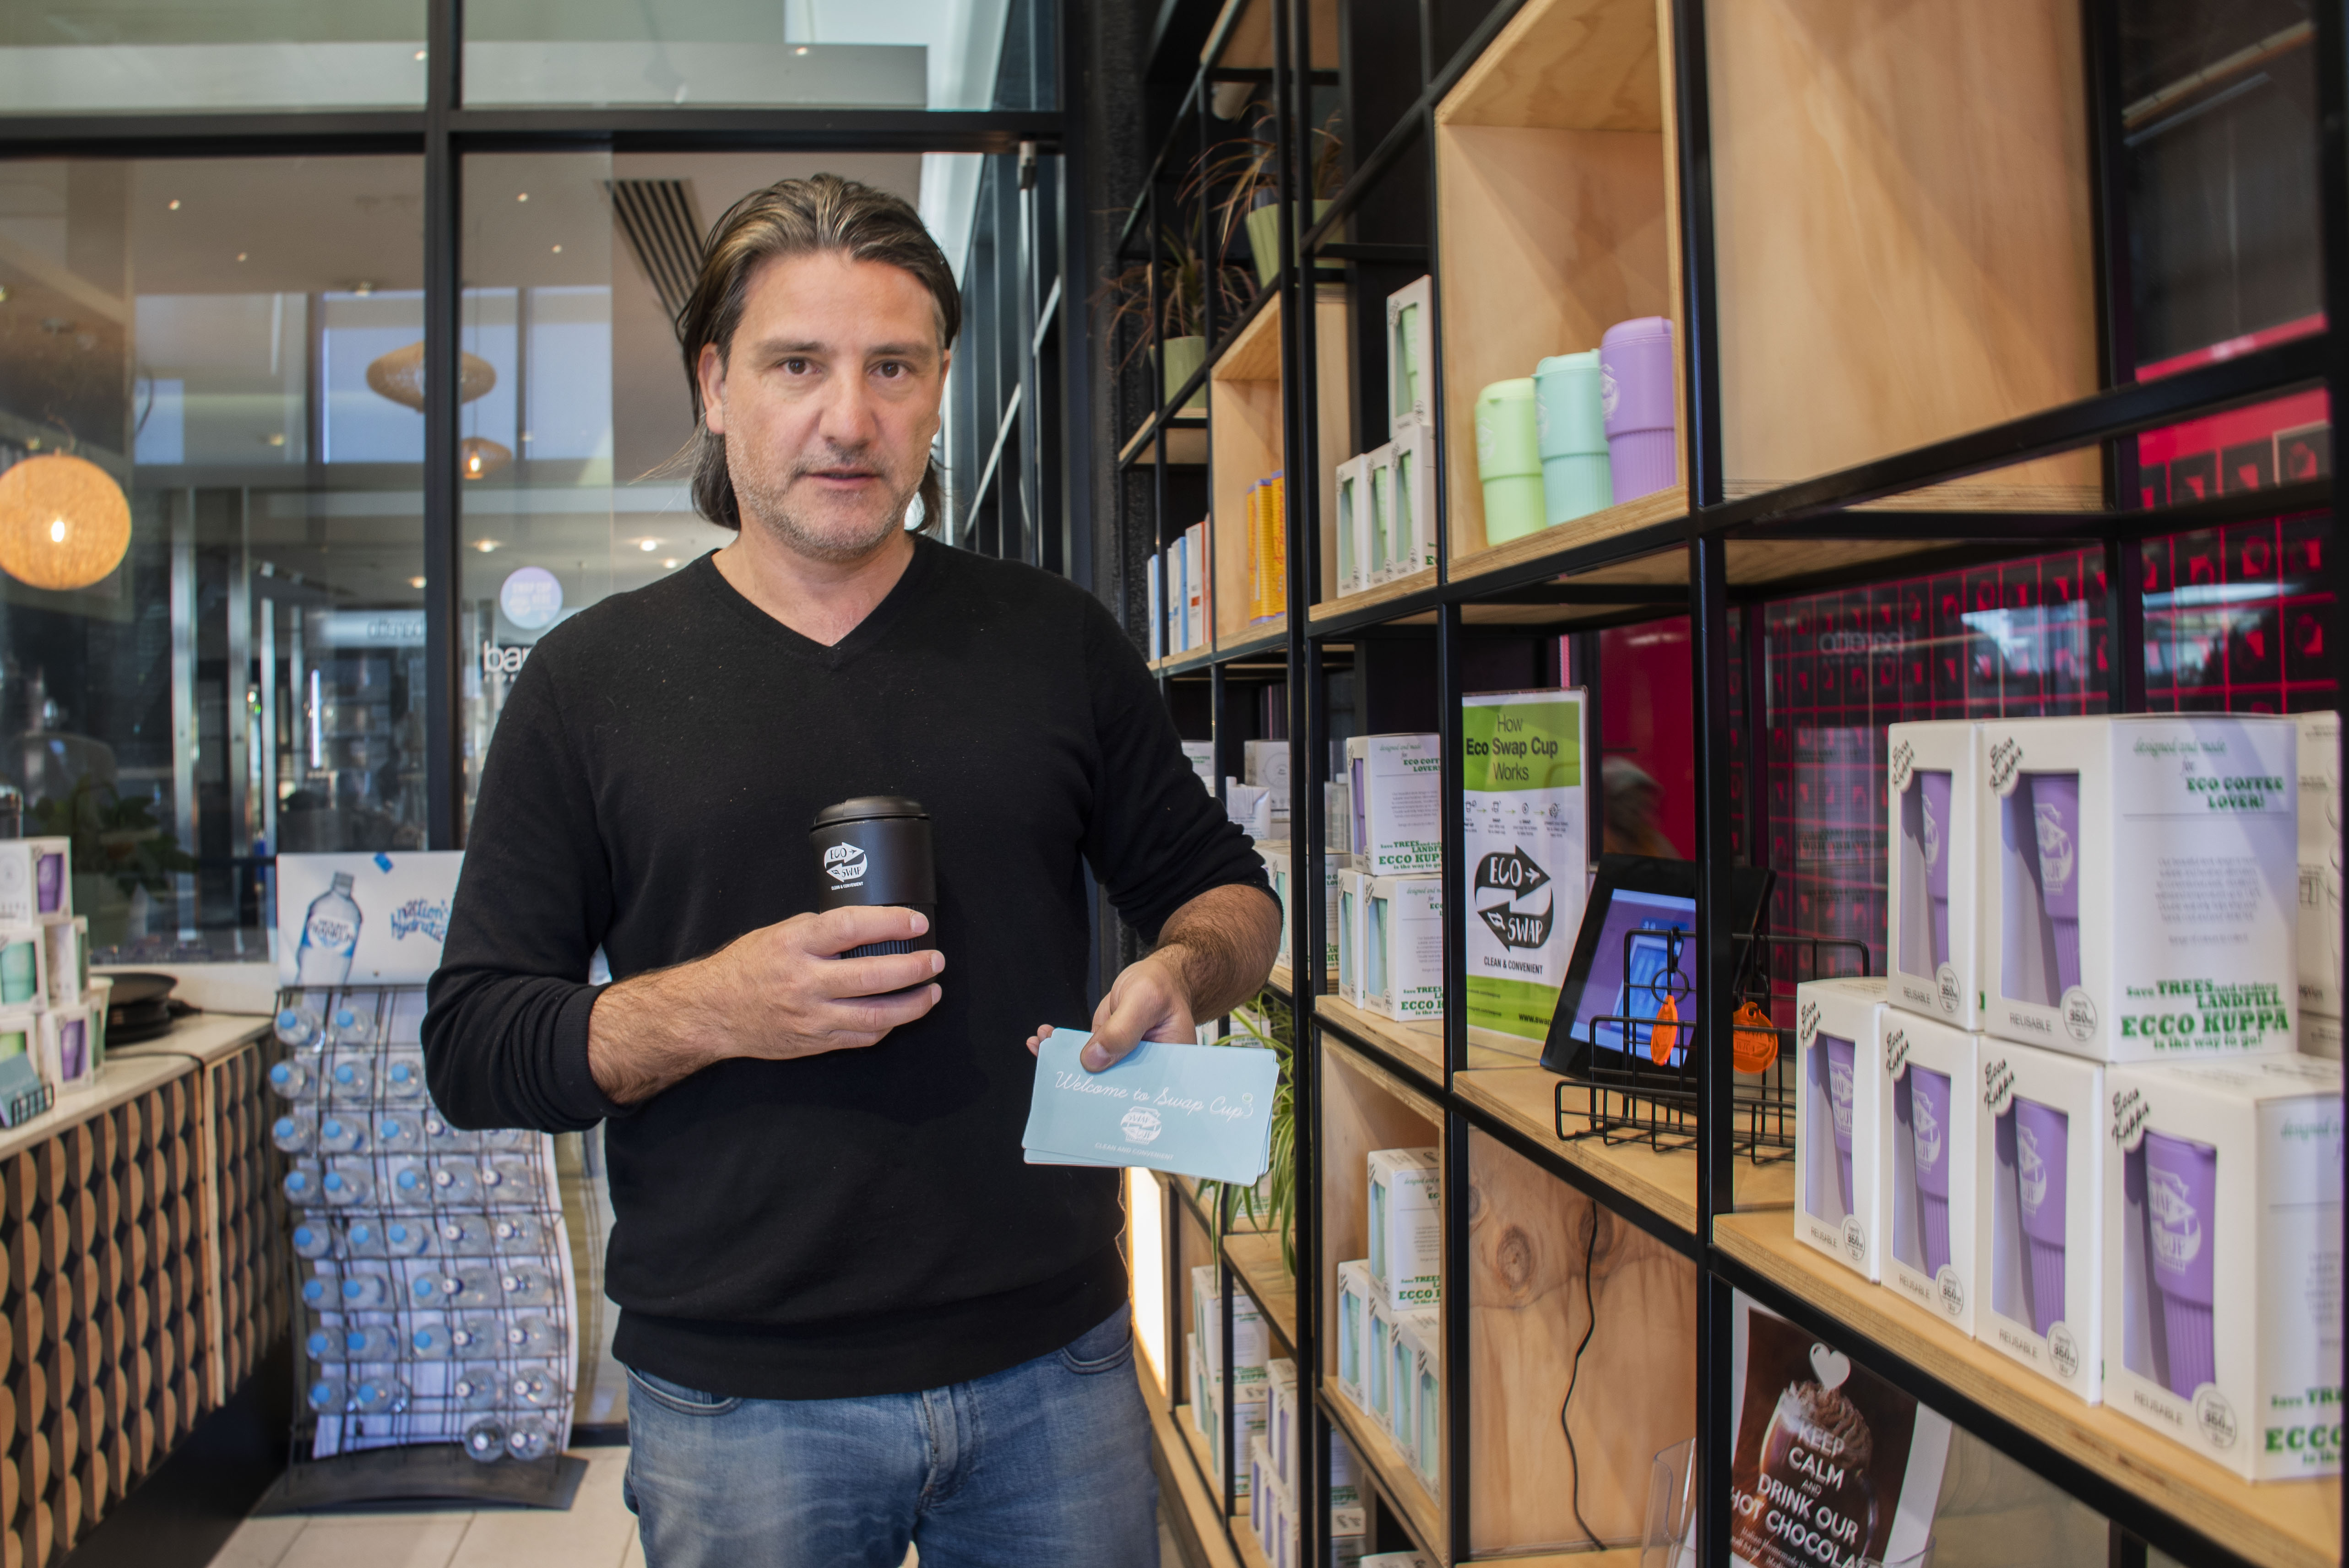 """Mirko Angele, the owner of Baretto Coffee and PortaVia Coffee, started running his coffee shop 18 years ago and says Melbourne's coffee culture has exploded in that time. He not only wanted to persue good coffee, but he was conscious of customers wanting to make sustainable and environmentally friendly choices. To build an eco-friendly and convenient way for people to use reusable takeaway cups, he launched a program called """"Swap Cups"""" in March 2019.    """"Under this program, people can enjoy their coffee in a healthy way; it is good for customers, good for our business and good for environment; it is a win-win situation which is good for everybody,"""